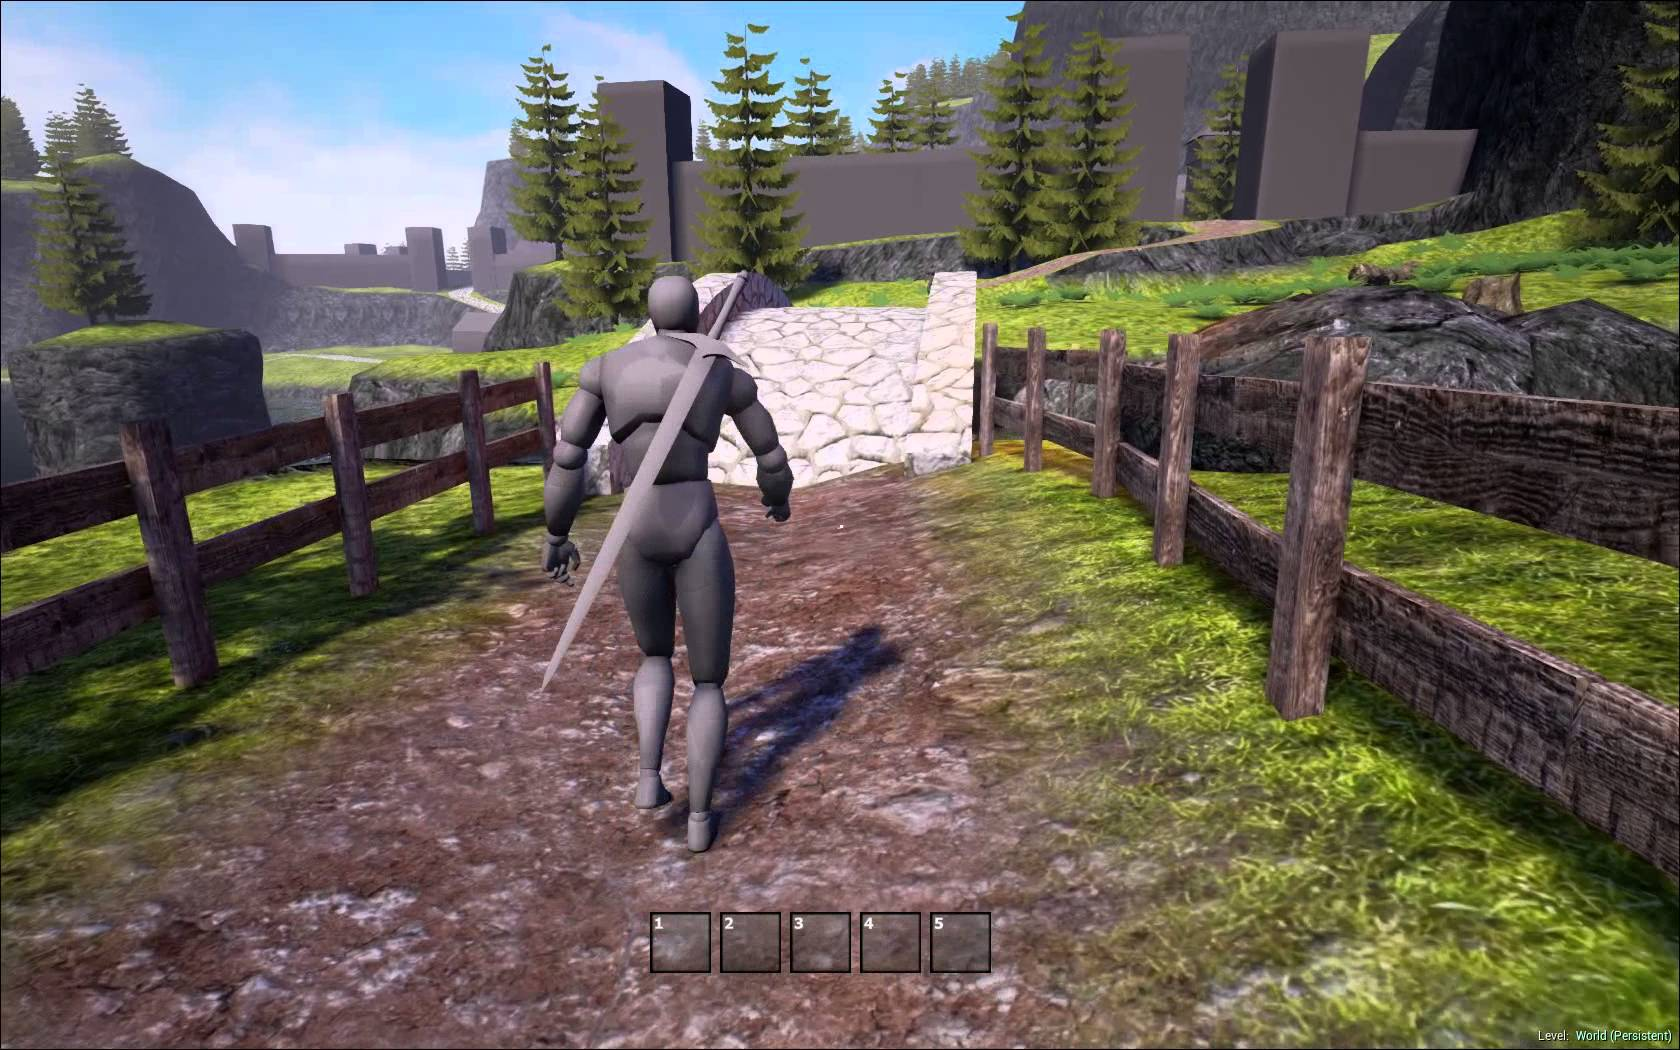 New RPG on Source 2 for Valve SoftwareGame playing info